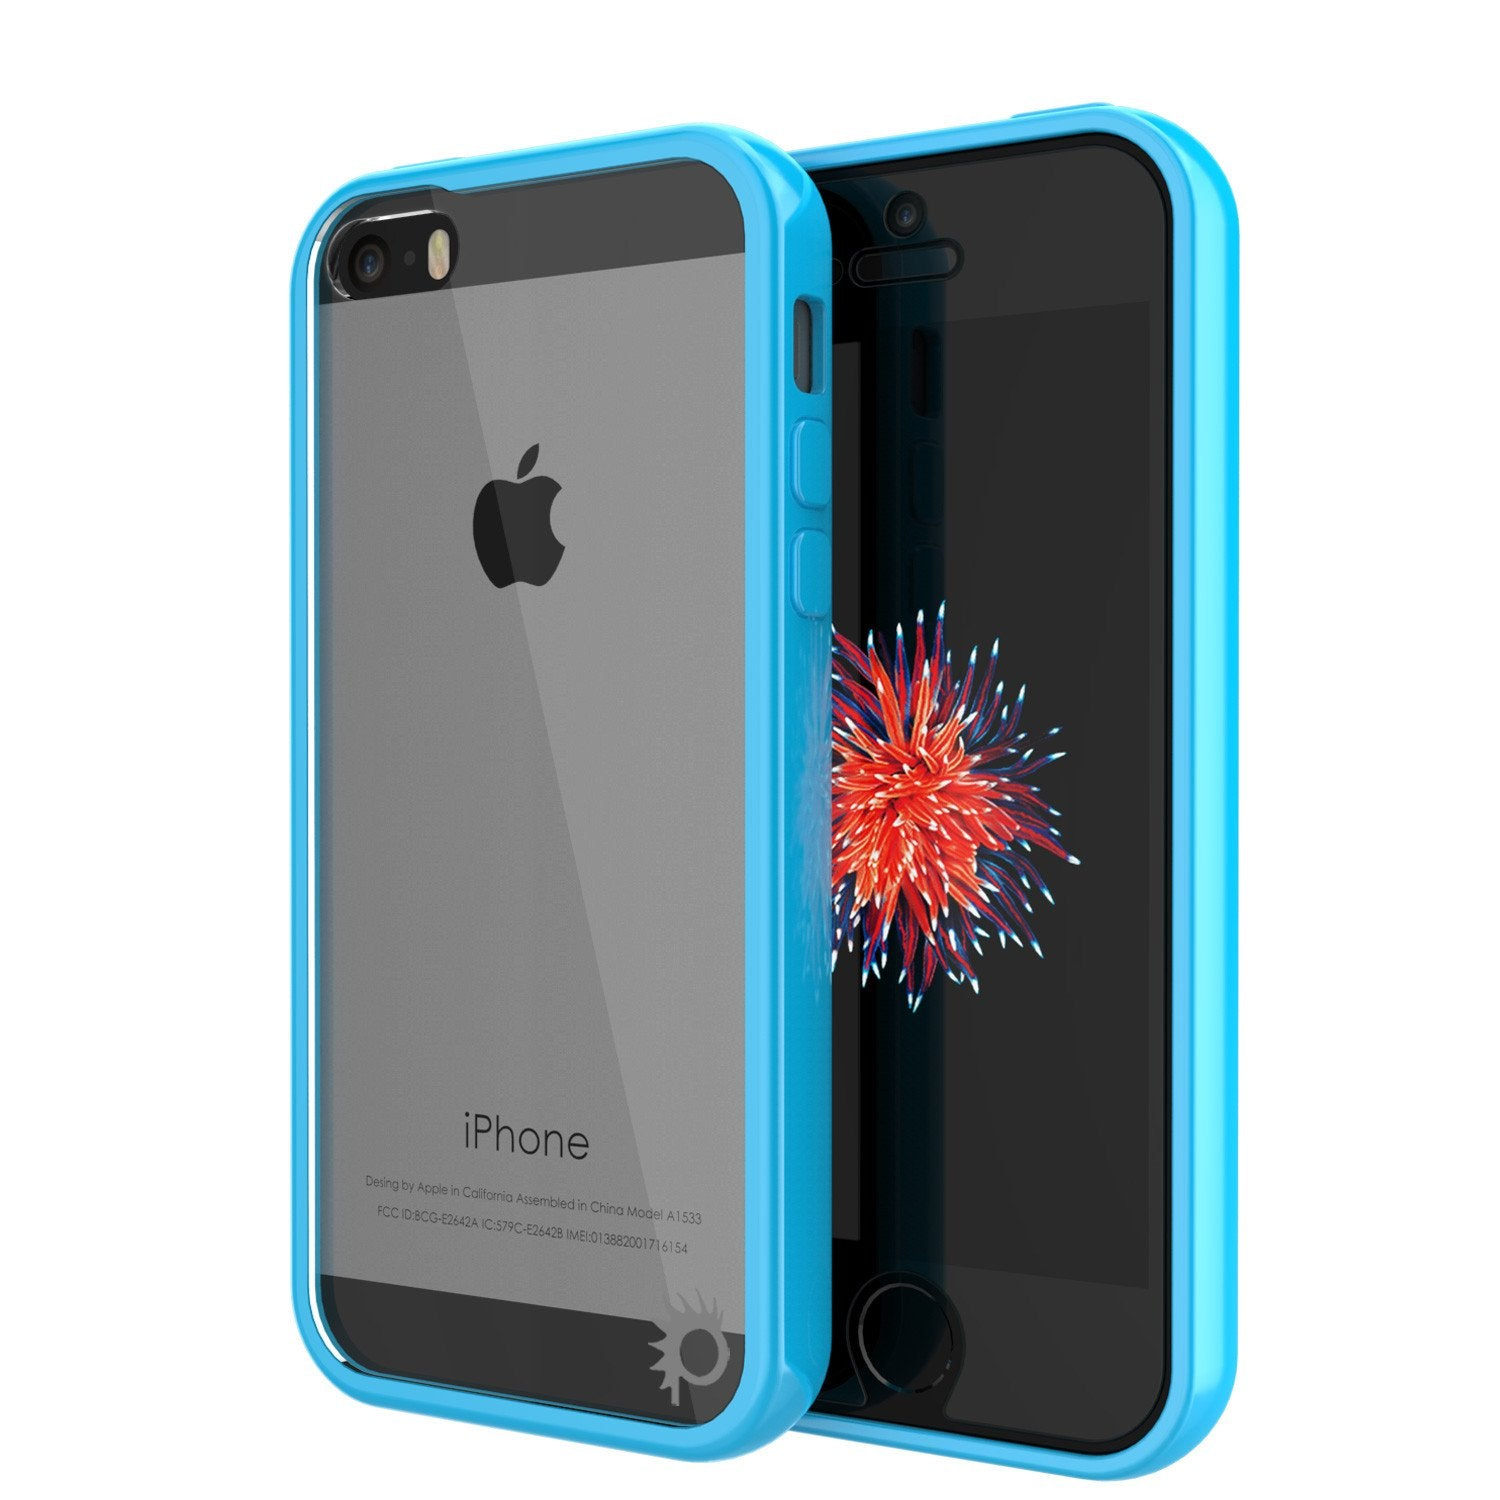 iPhone SE/5S/5 Case Punkcase® LUCID 2.0 Light Blue Series w/ PUNK SHIELD Screen Protector | Ultra Fit